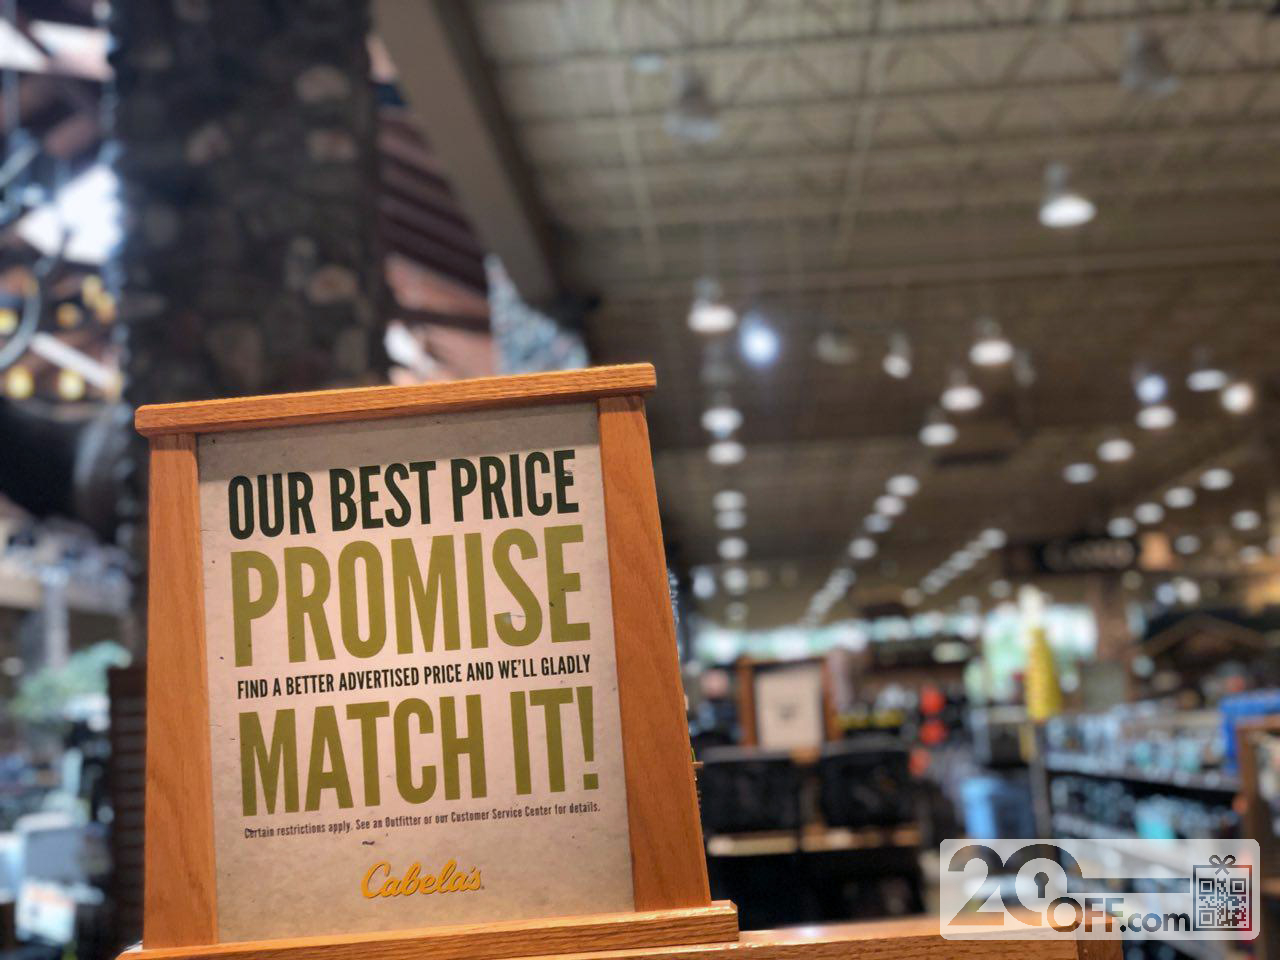 Cabela's Best Price Promoce Match